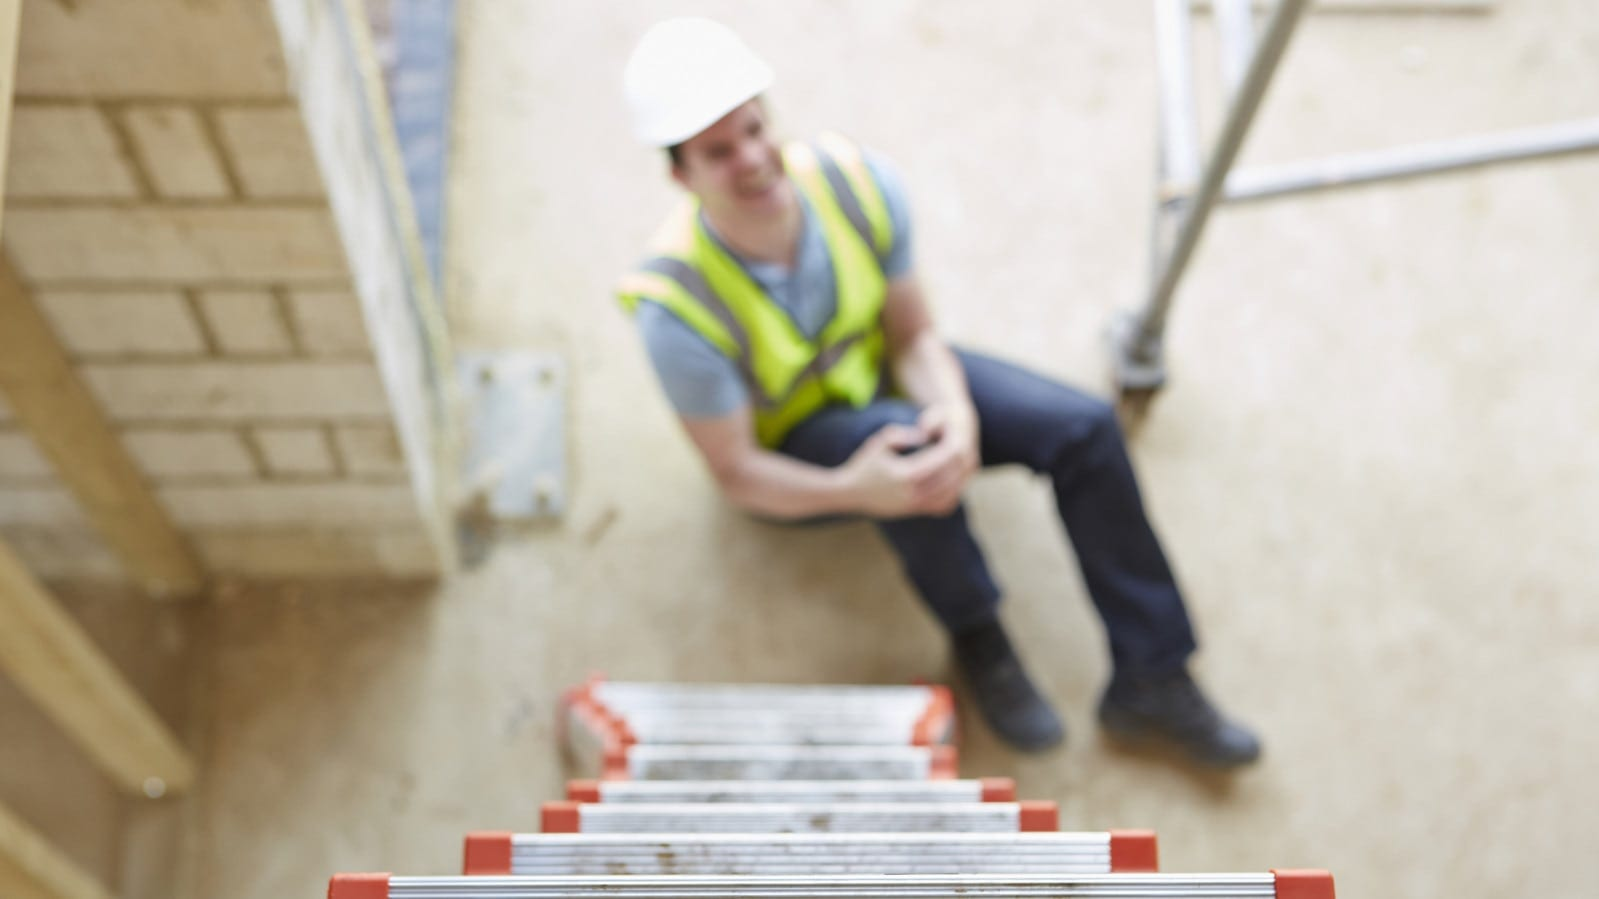 Construction Worker With Knee Injury Stock Photo